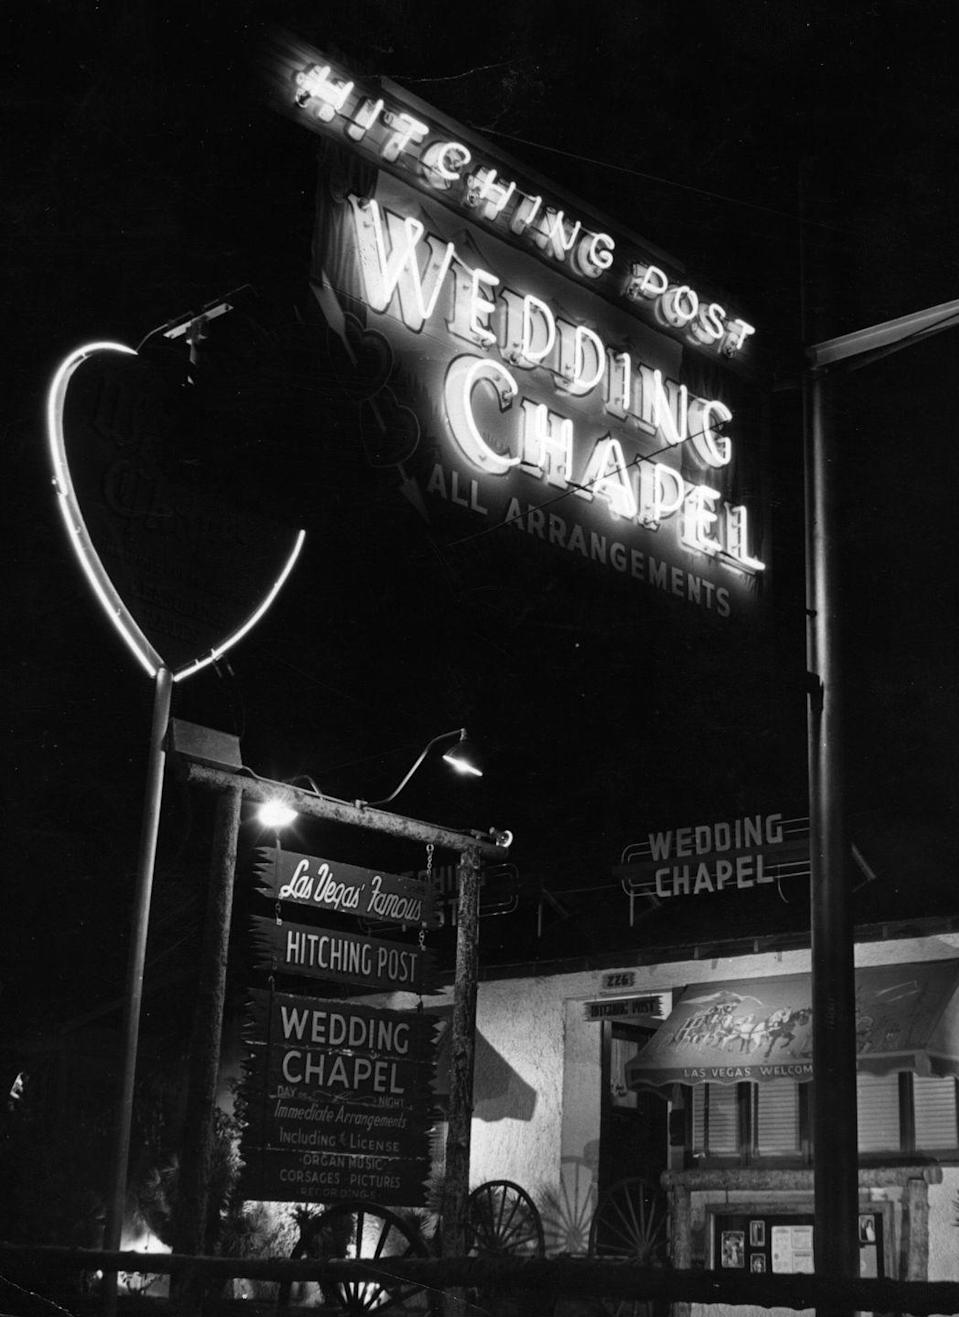 "<p>Las Vegas County issued its first gambling license in 1931—and weddings have been a mainstay of Sin City ever since, luring lovebirds with tax licensing laws that meant no blood tests and no waiting periods. Among the earliest celebrities to wed in Las Vegas were the actors Clara Bow and Rex Bell, who <a href=""http://www.nytimes.com/2006/09/03/us/03vegas.html"" rel=""nofollow noopener"" target=""_blank"" data-ylk=""slk:tied the knot there in 1931"" class=""link rapid-noclick-resp"">tied the knot there in 1931</a>. </p>"